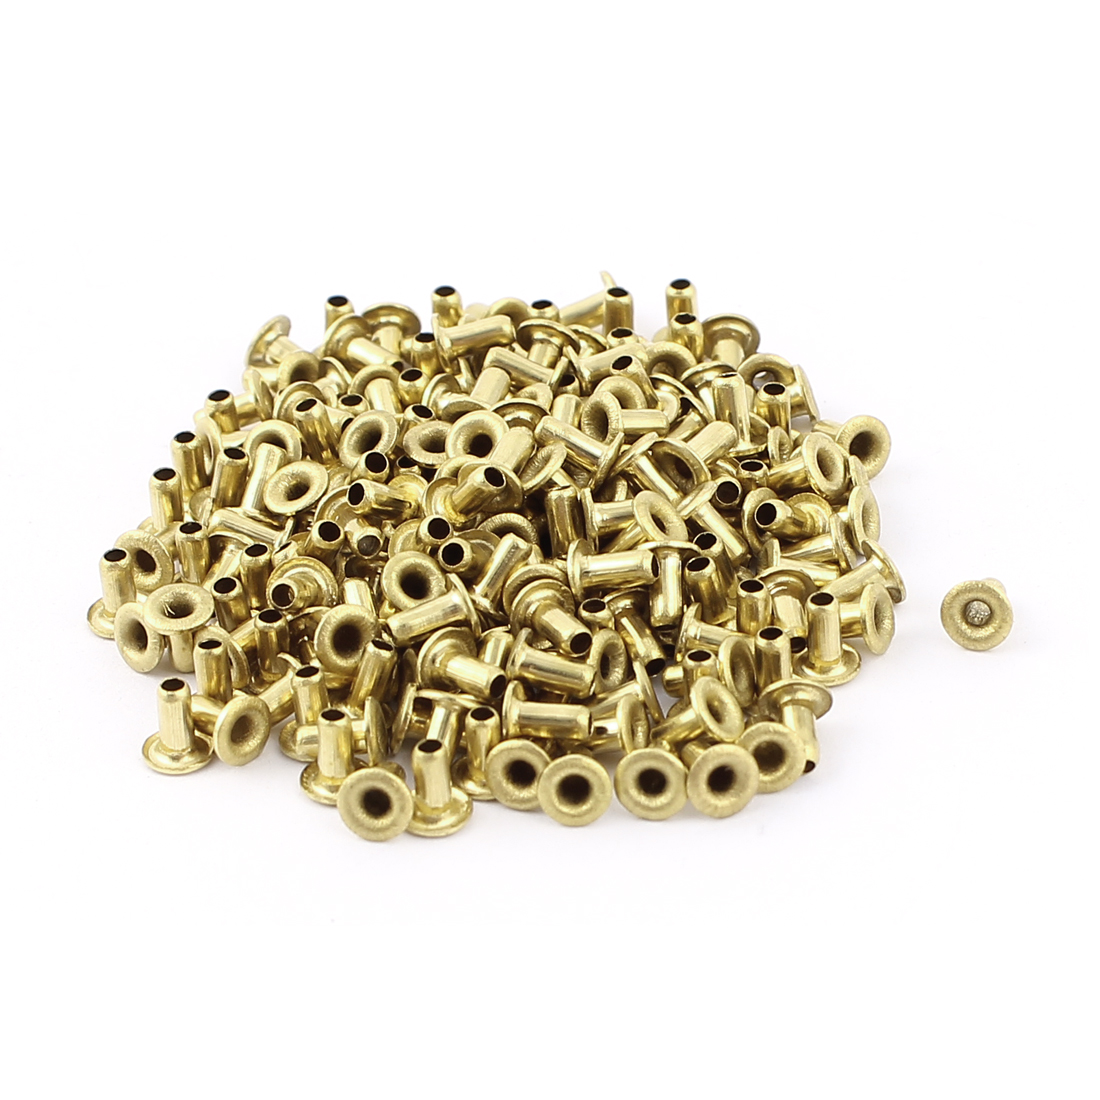 200pcs M2x4 Copper Via Vias Plated Through Hole Rivets Hollow Grommets PCB Circuit Board